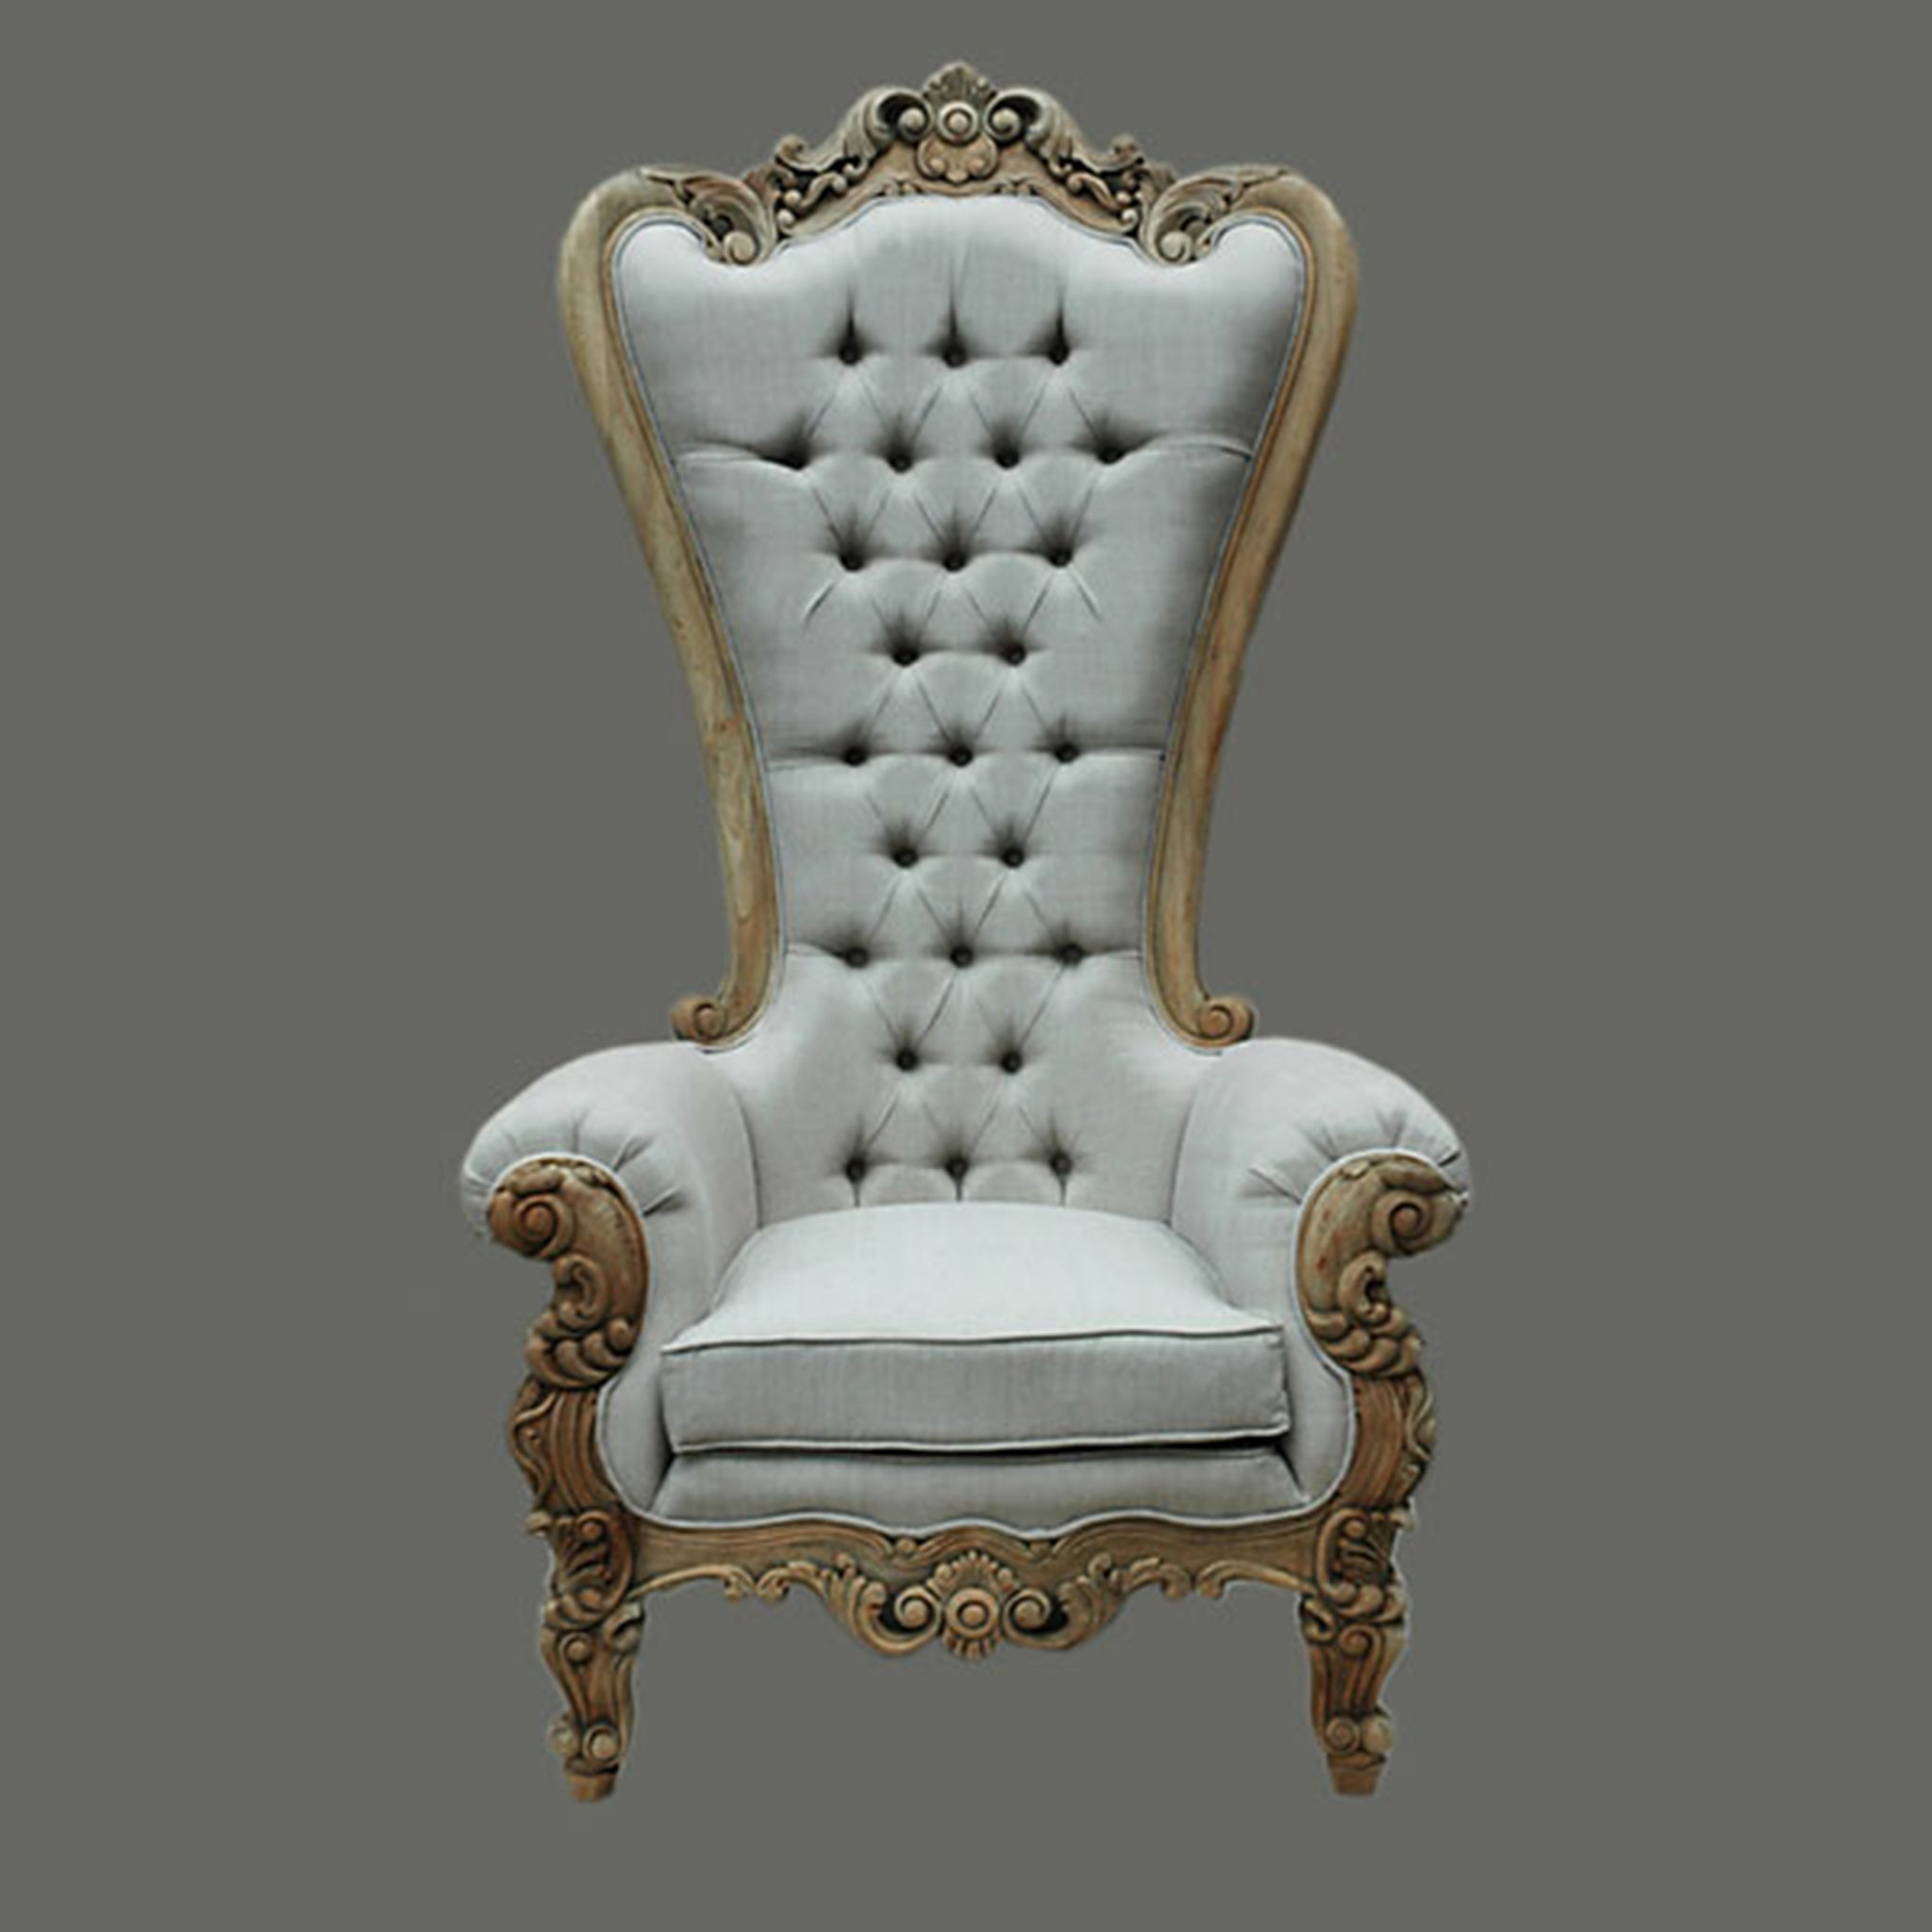 Ornate Queen Linen Upholstered Tall Chair - Furniture on Main